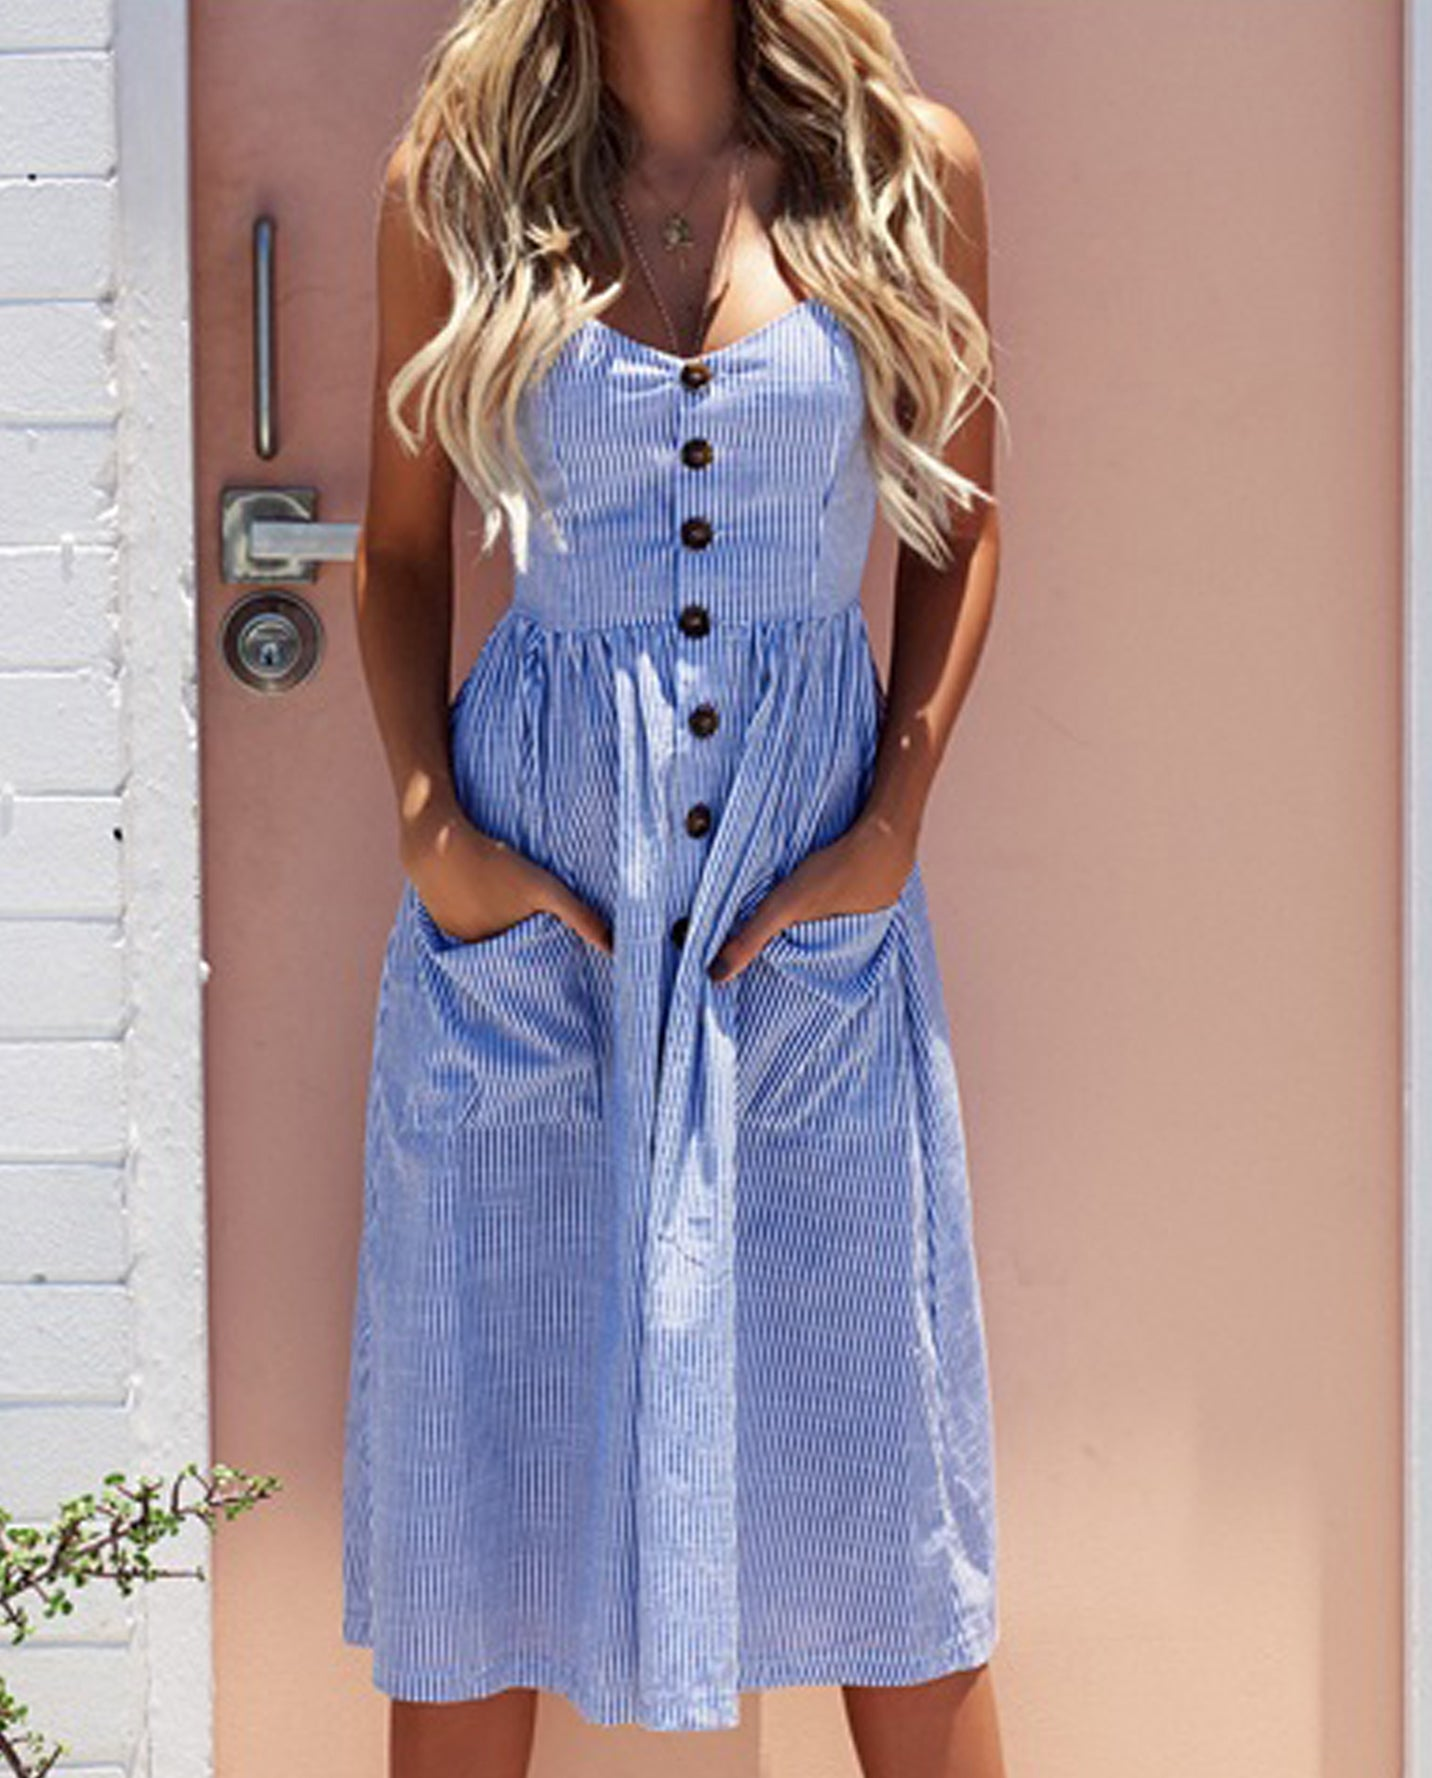 Cute Casual Summer Dresses Outfit Ideas for Women - Blue and White Striped Midi  Dress with ... ee12dfa77